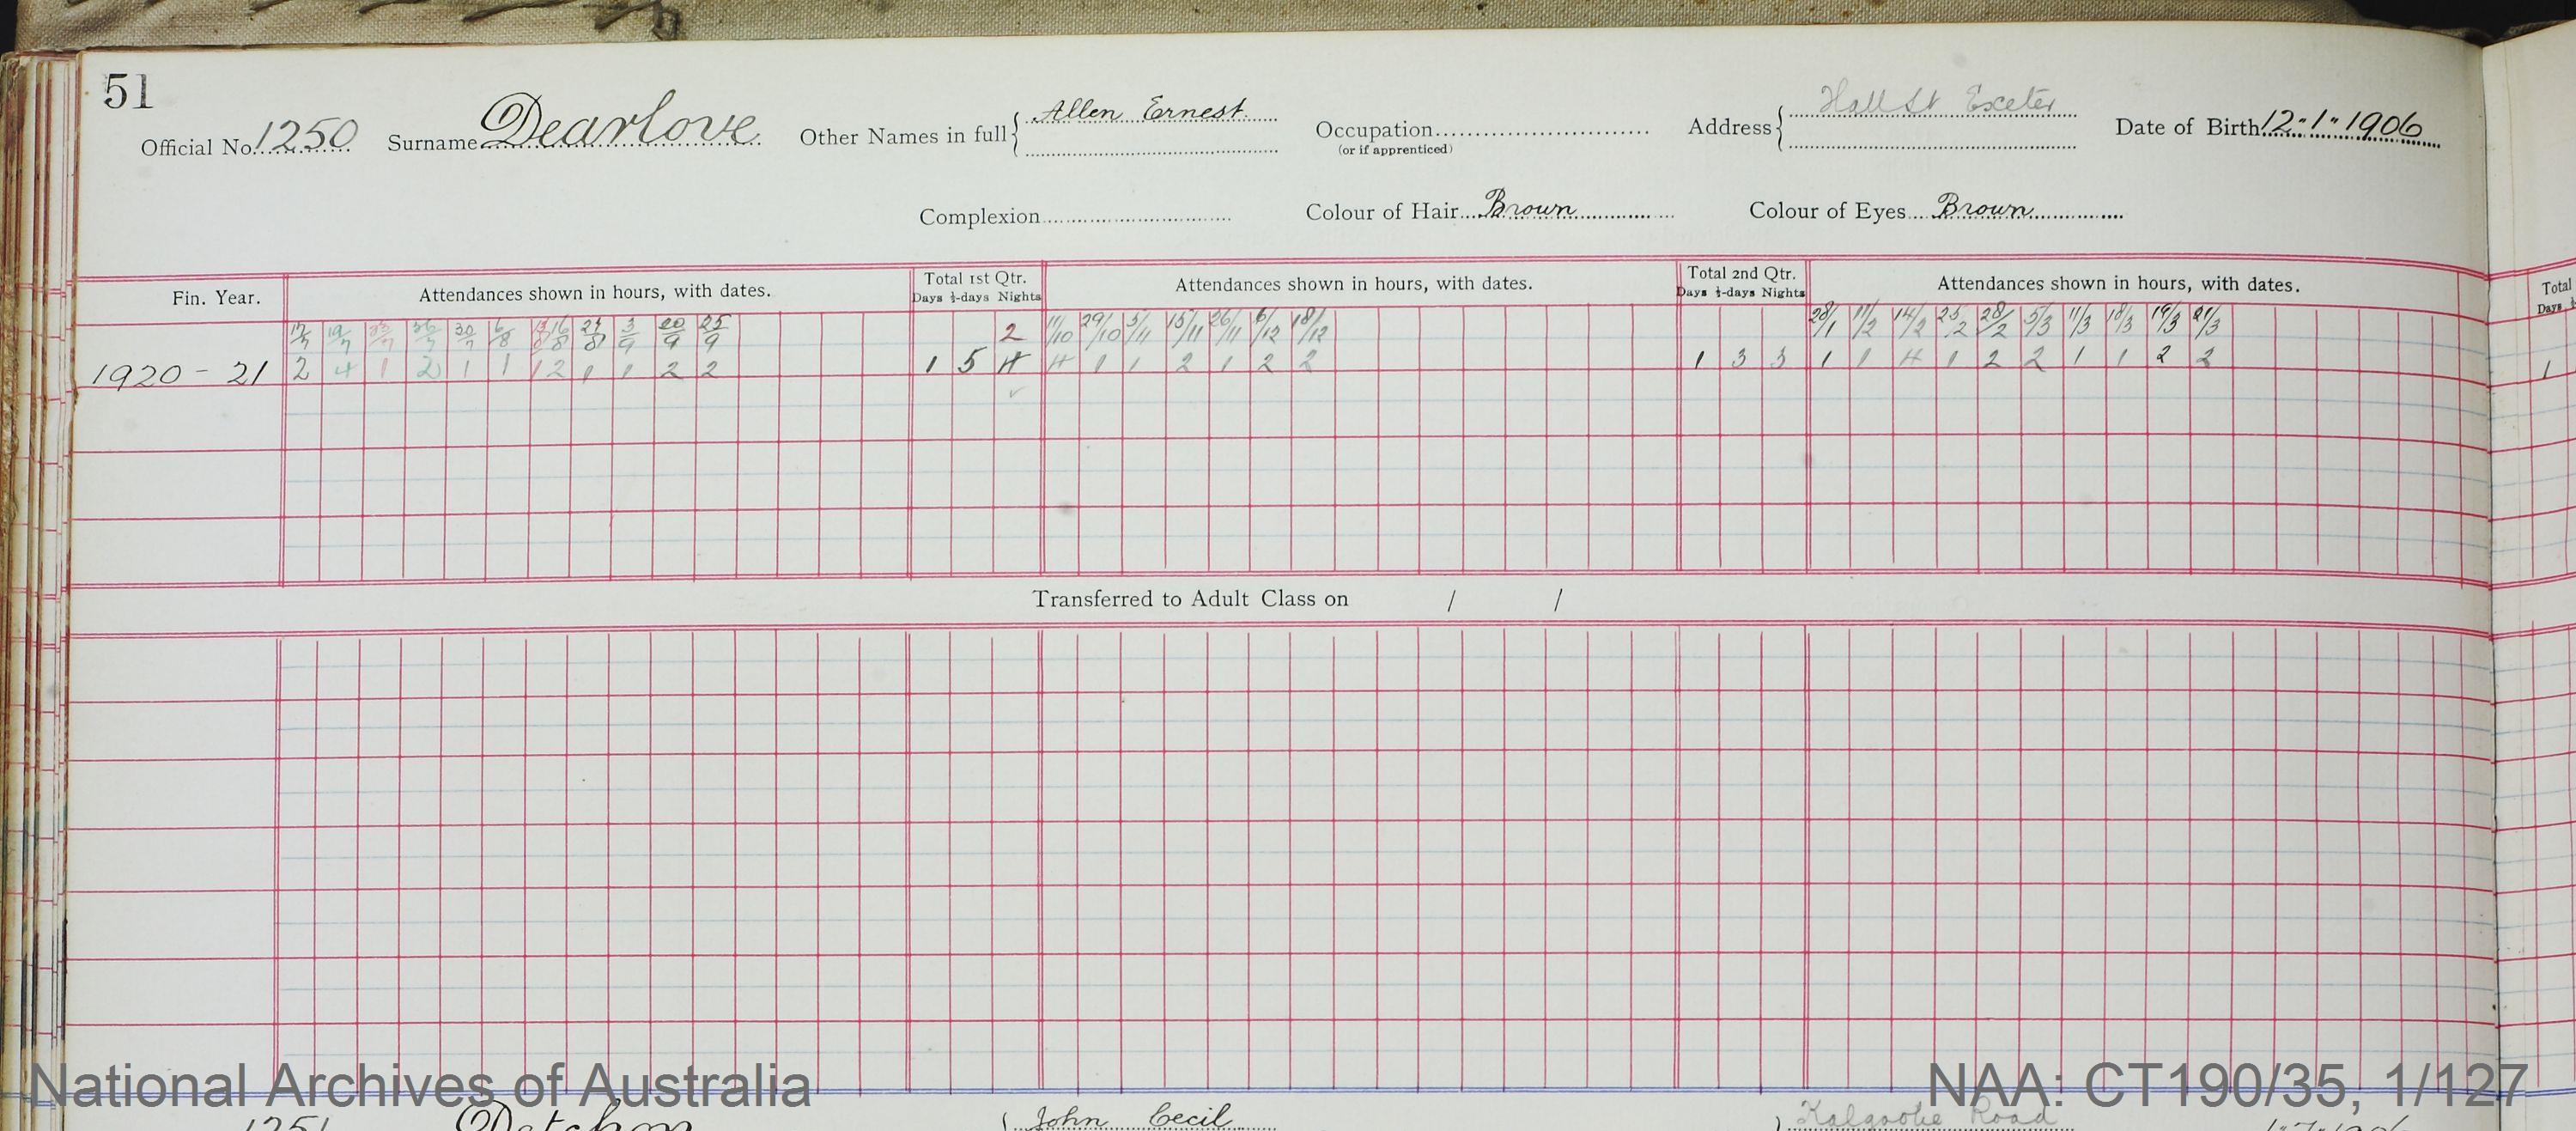 SURNAME - DEARLOVE;  GIVEN NAME(S) - Allen Ernest;  OFFICIAL NUMBER - 1250;  DATE OF BIRTH - 12 January 1906;  PLACE OF BIRTH - [Unknown];  NEXT OF KIN - [Unknown];  SERVICE/STATION - Semaphore, South Australia;  REGISTRATION DATE - 29 January 1920